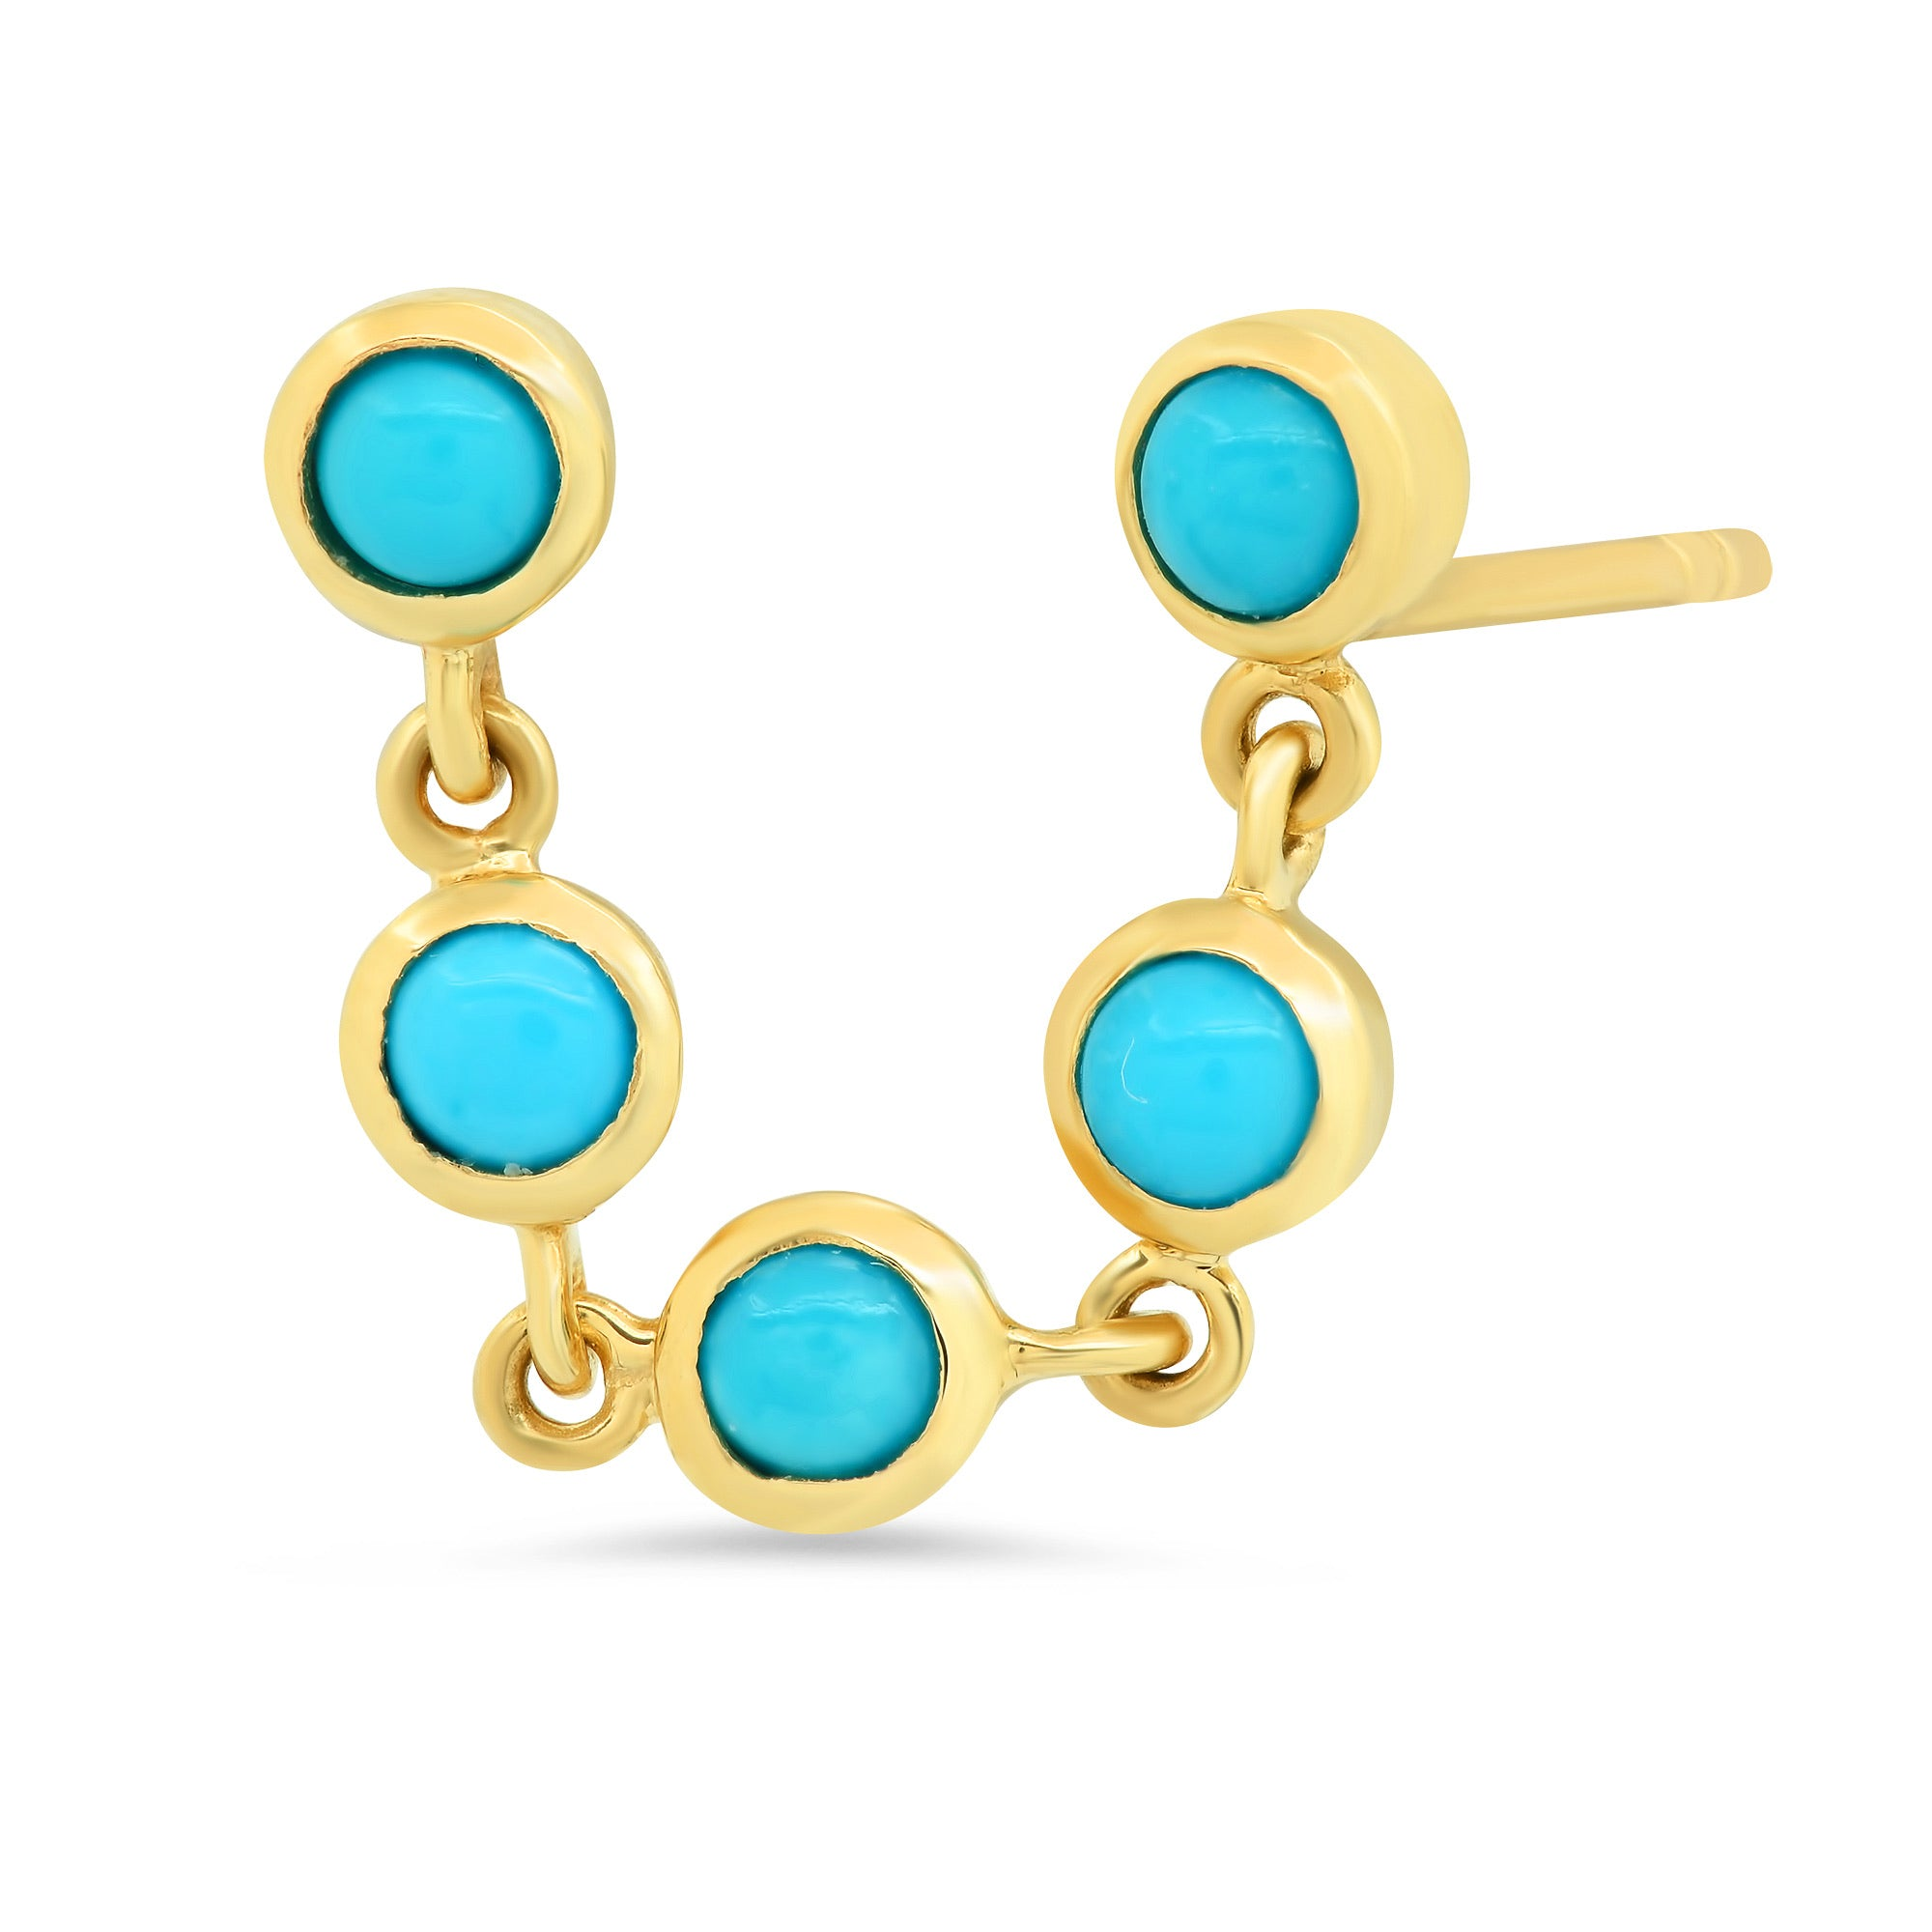 Double Pierced Turquoise Earrings